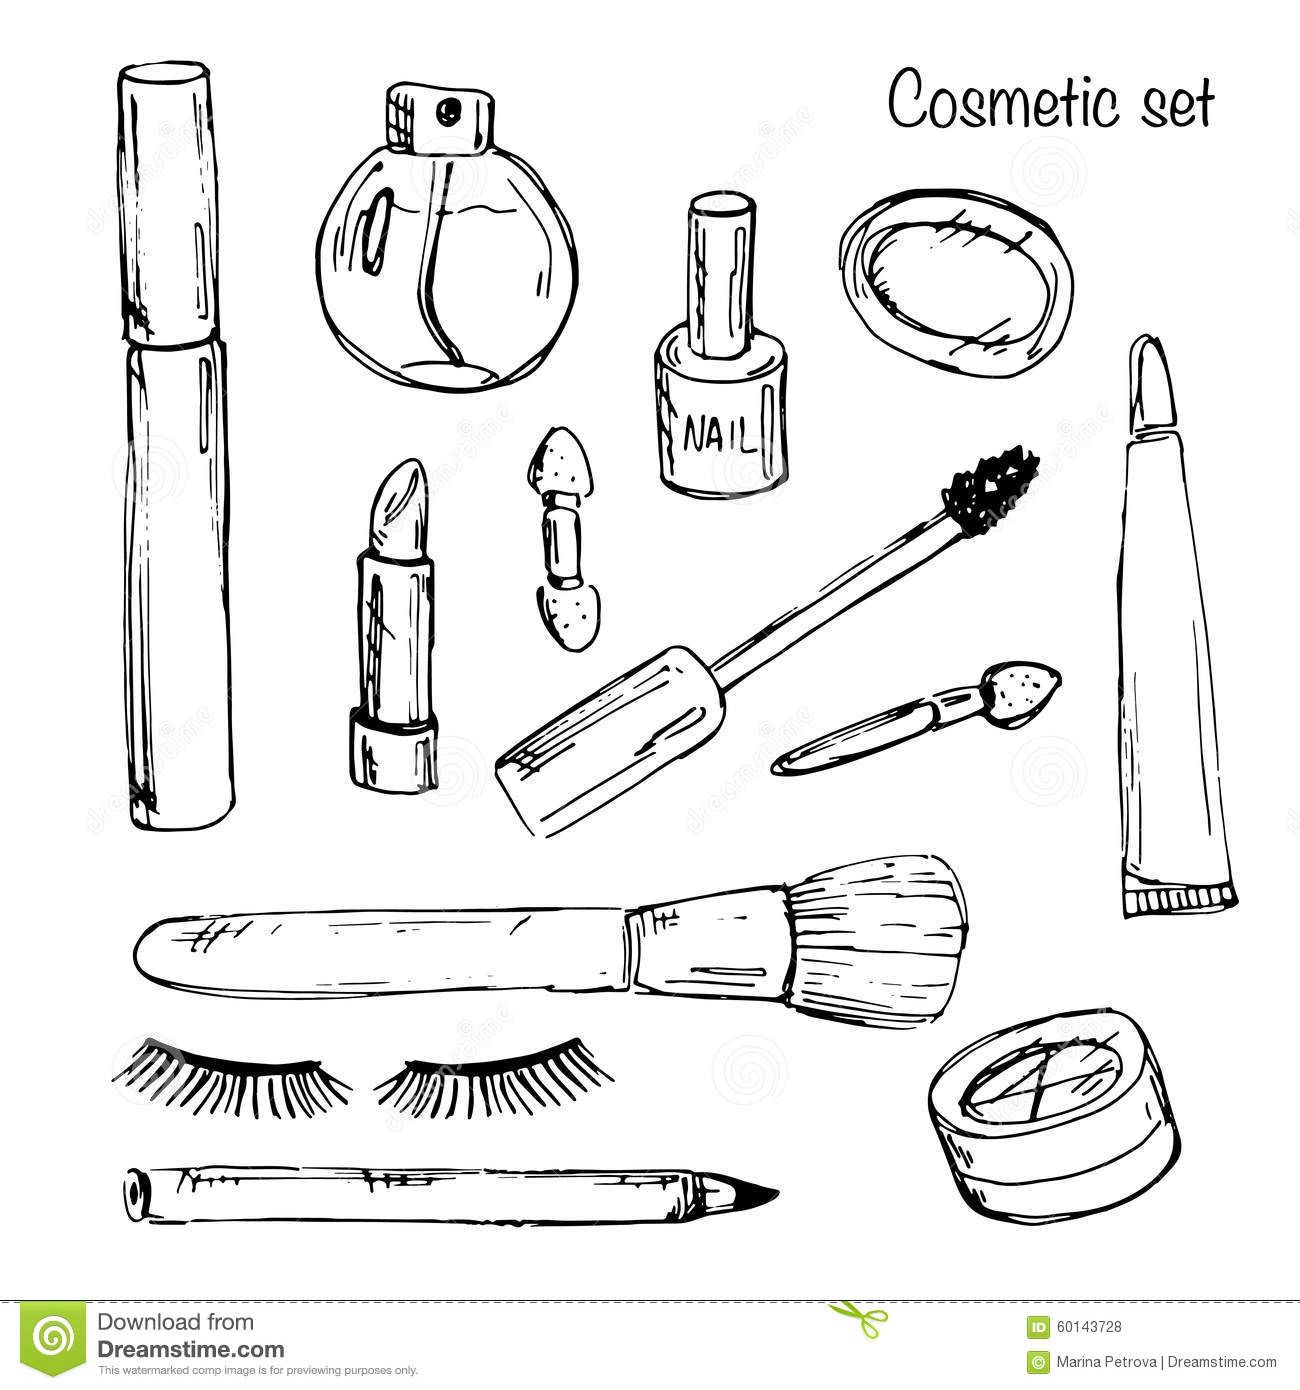 Pin By Kristina Reynolds Haney On Templates Coloring Pages Free Makeup Coloring Pages To Print